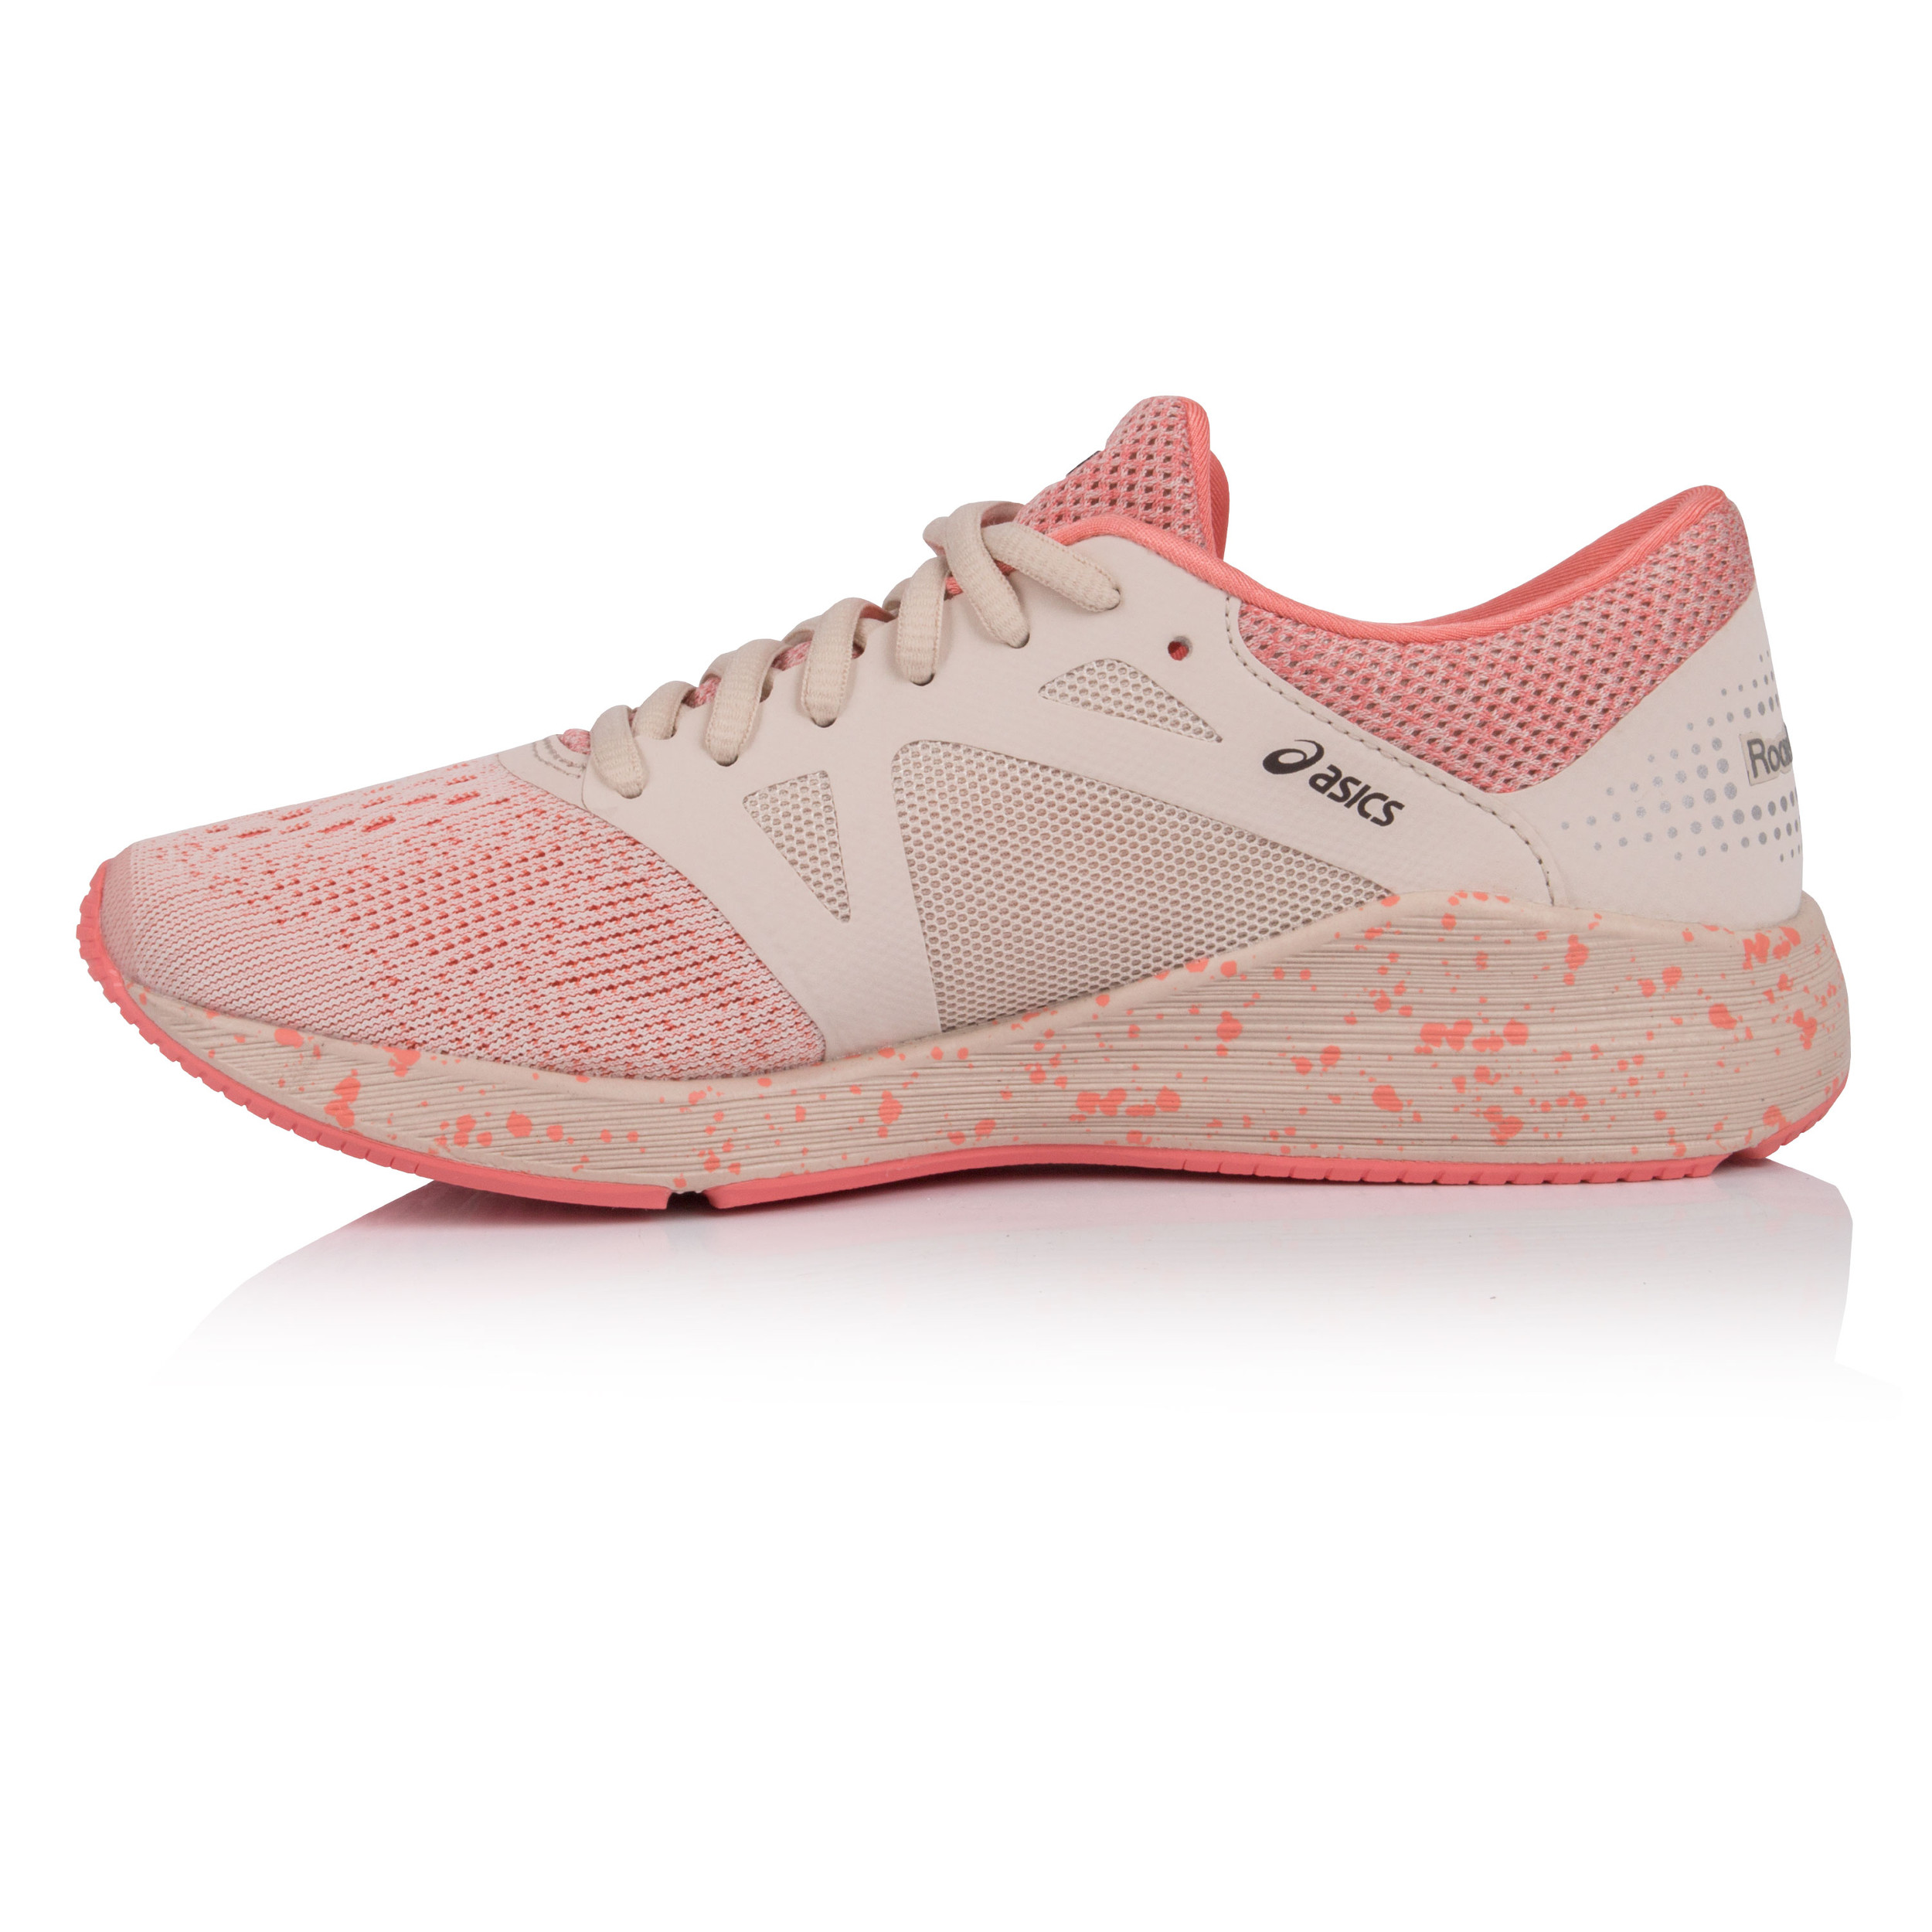 ASICS Womens Roadhawk Sports FF Running Chaussures Trainers Baskets Rose Sports Roadhawk Breathable 868848